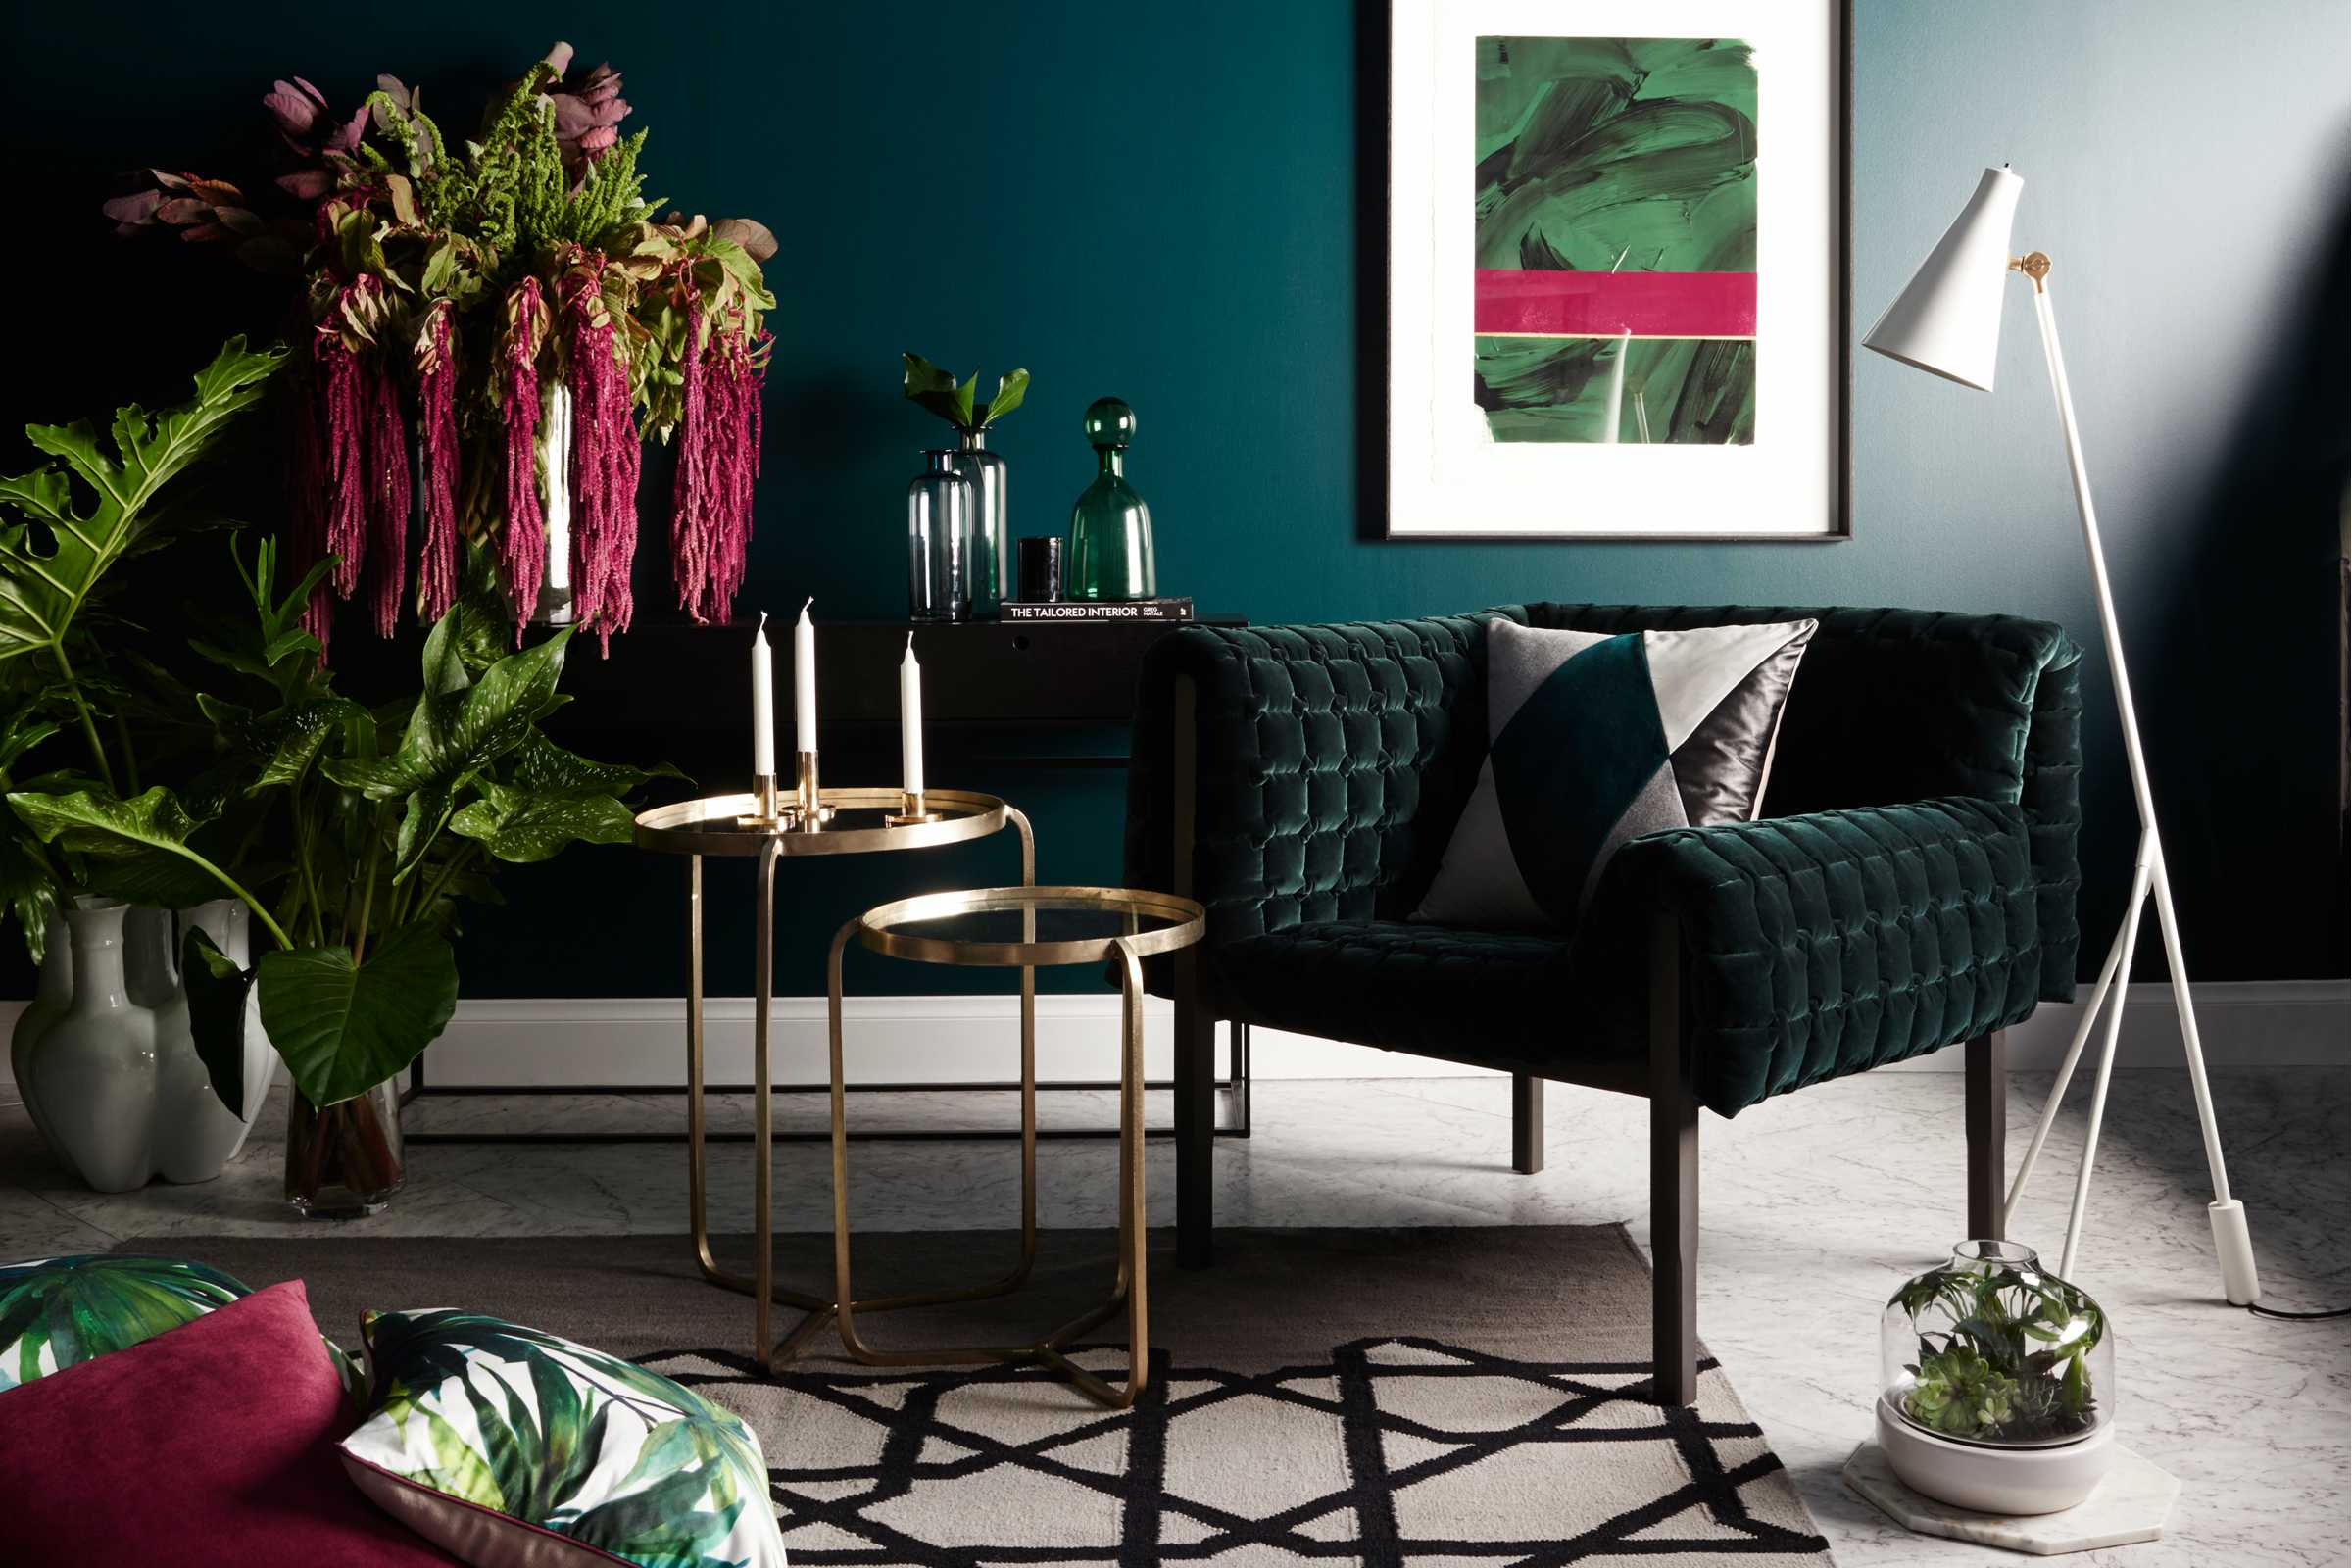 Color-Trends-2018-Home-Interiors-by-Pantone-Green-purple